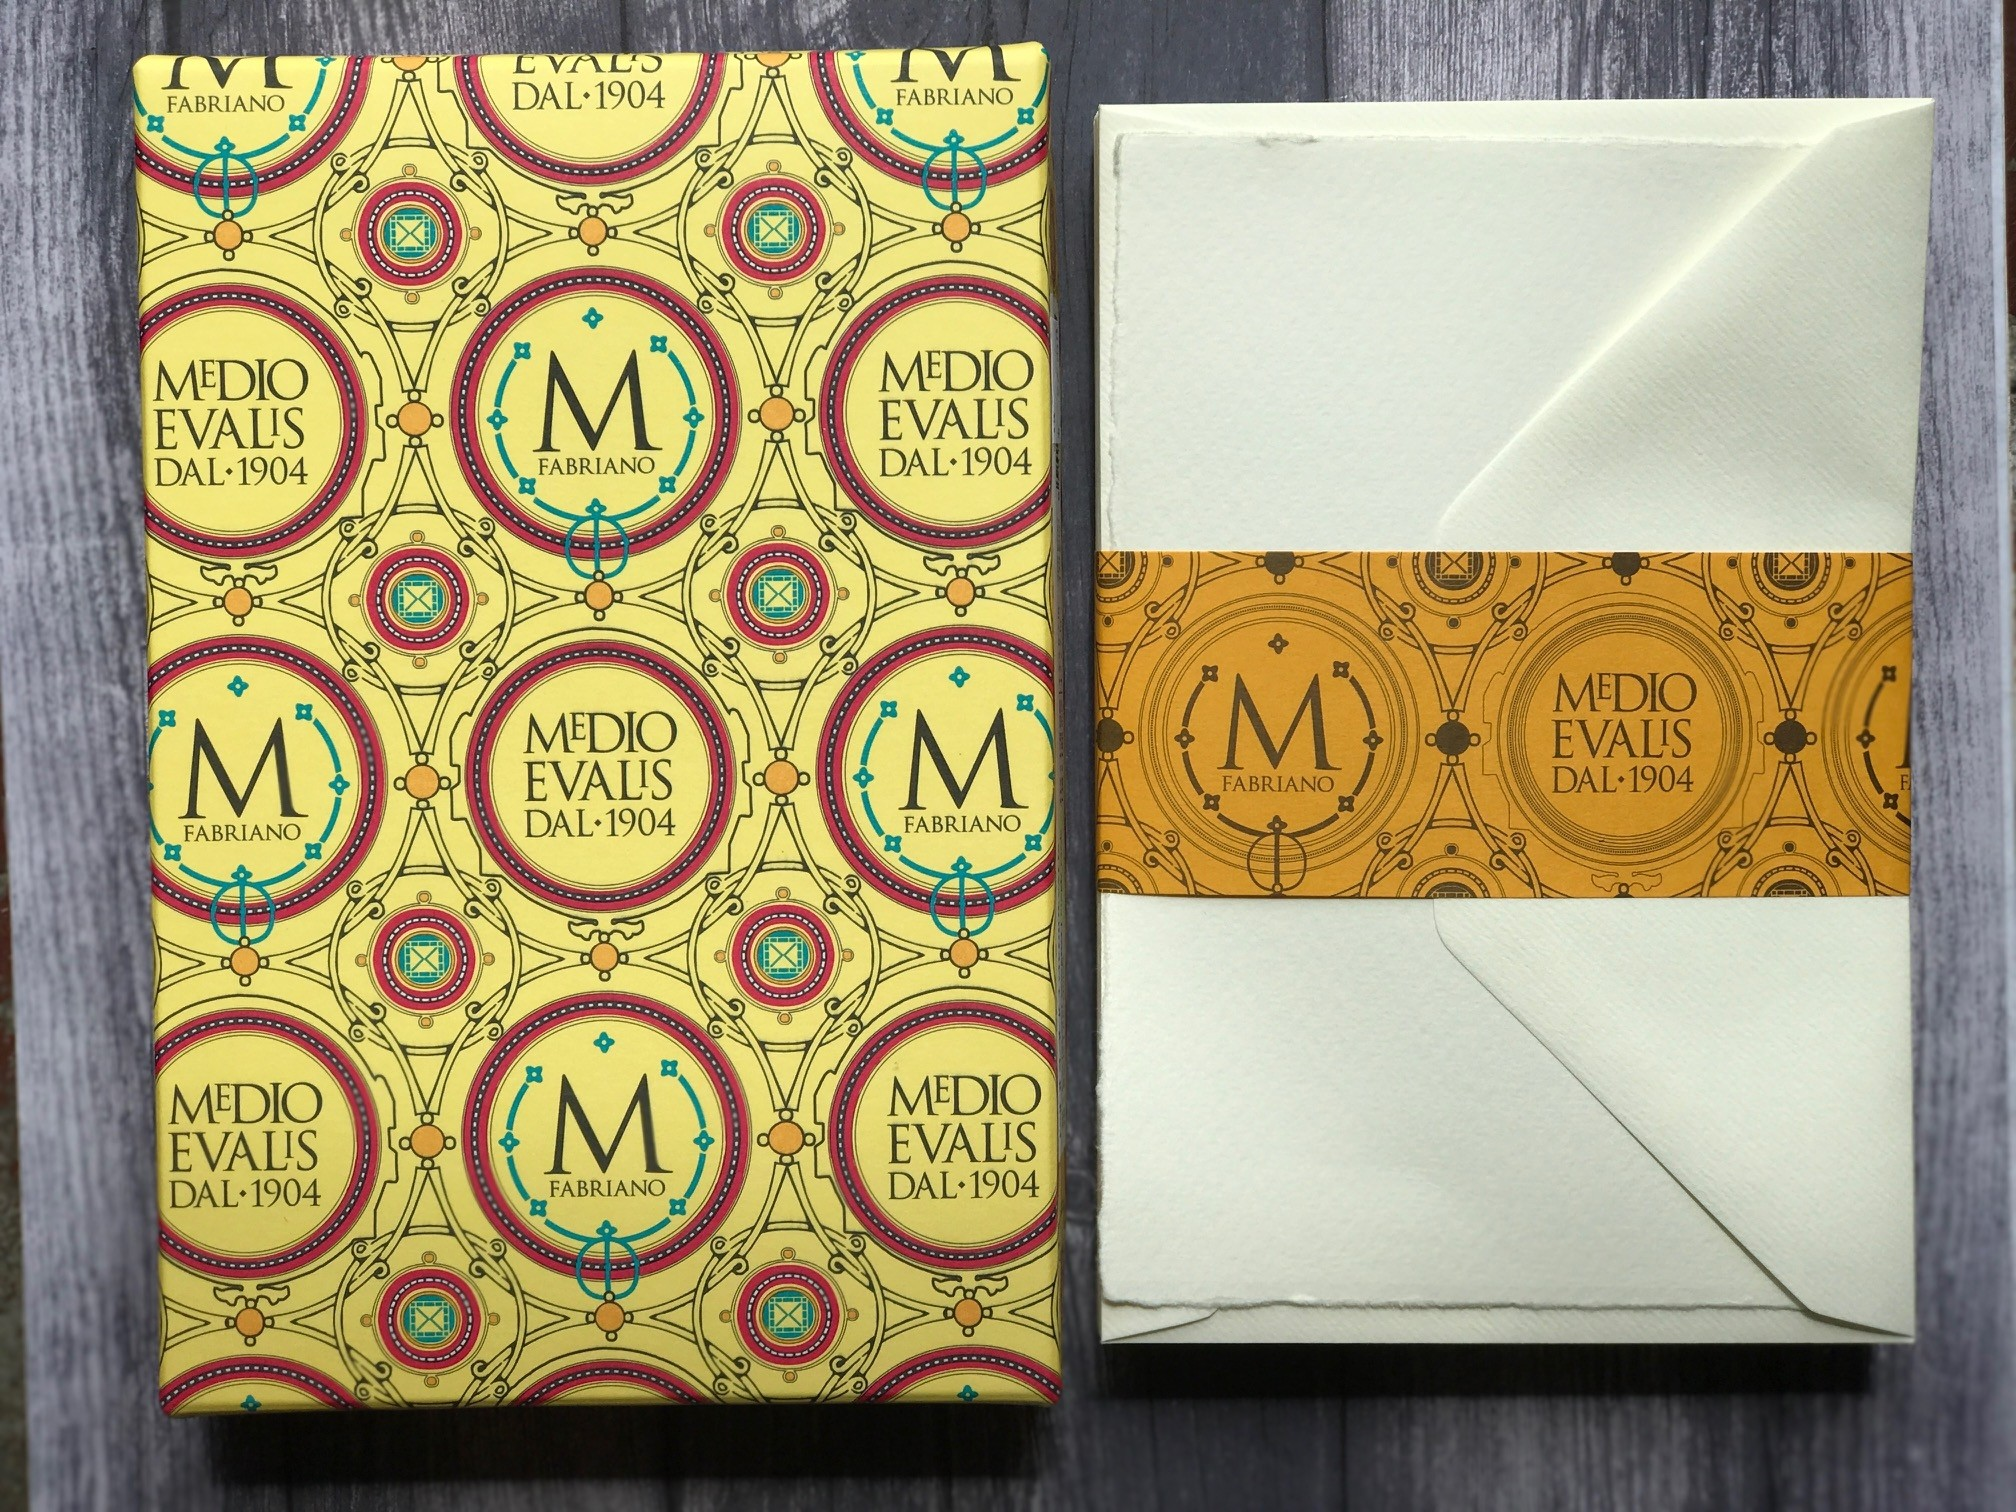 Fabriano Single Flat Cards and Envelopes - large